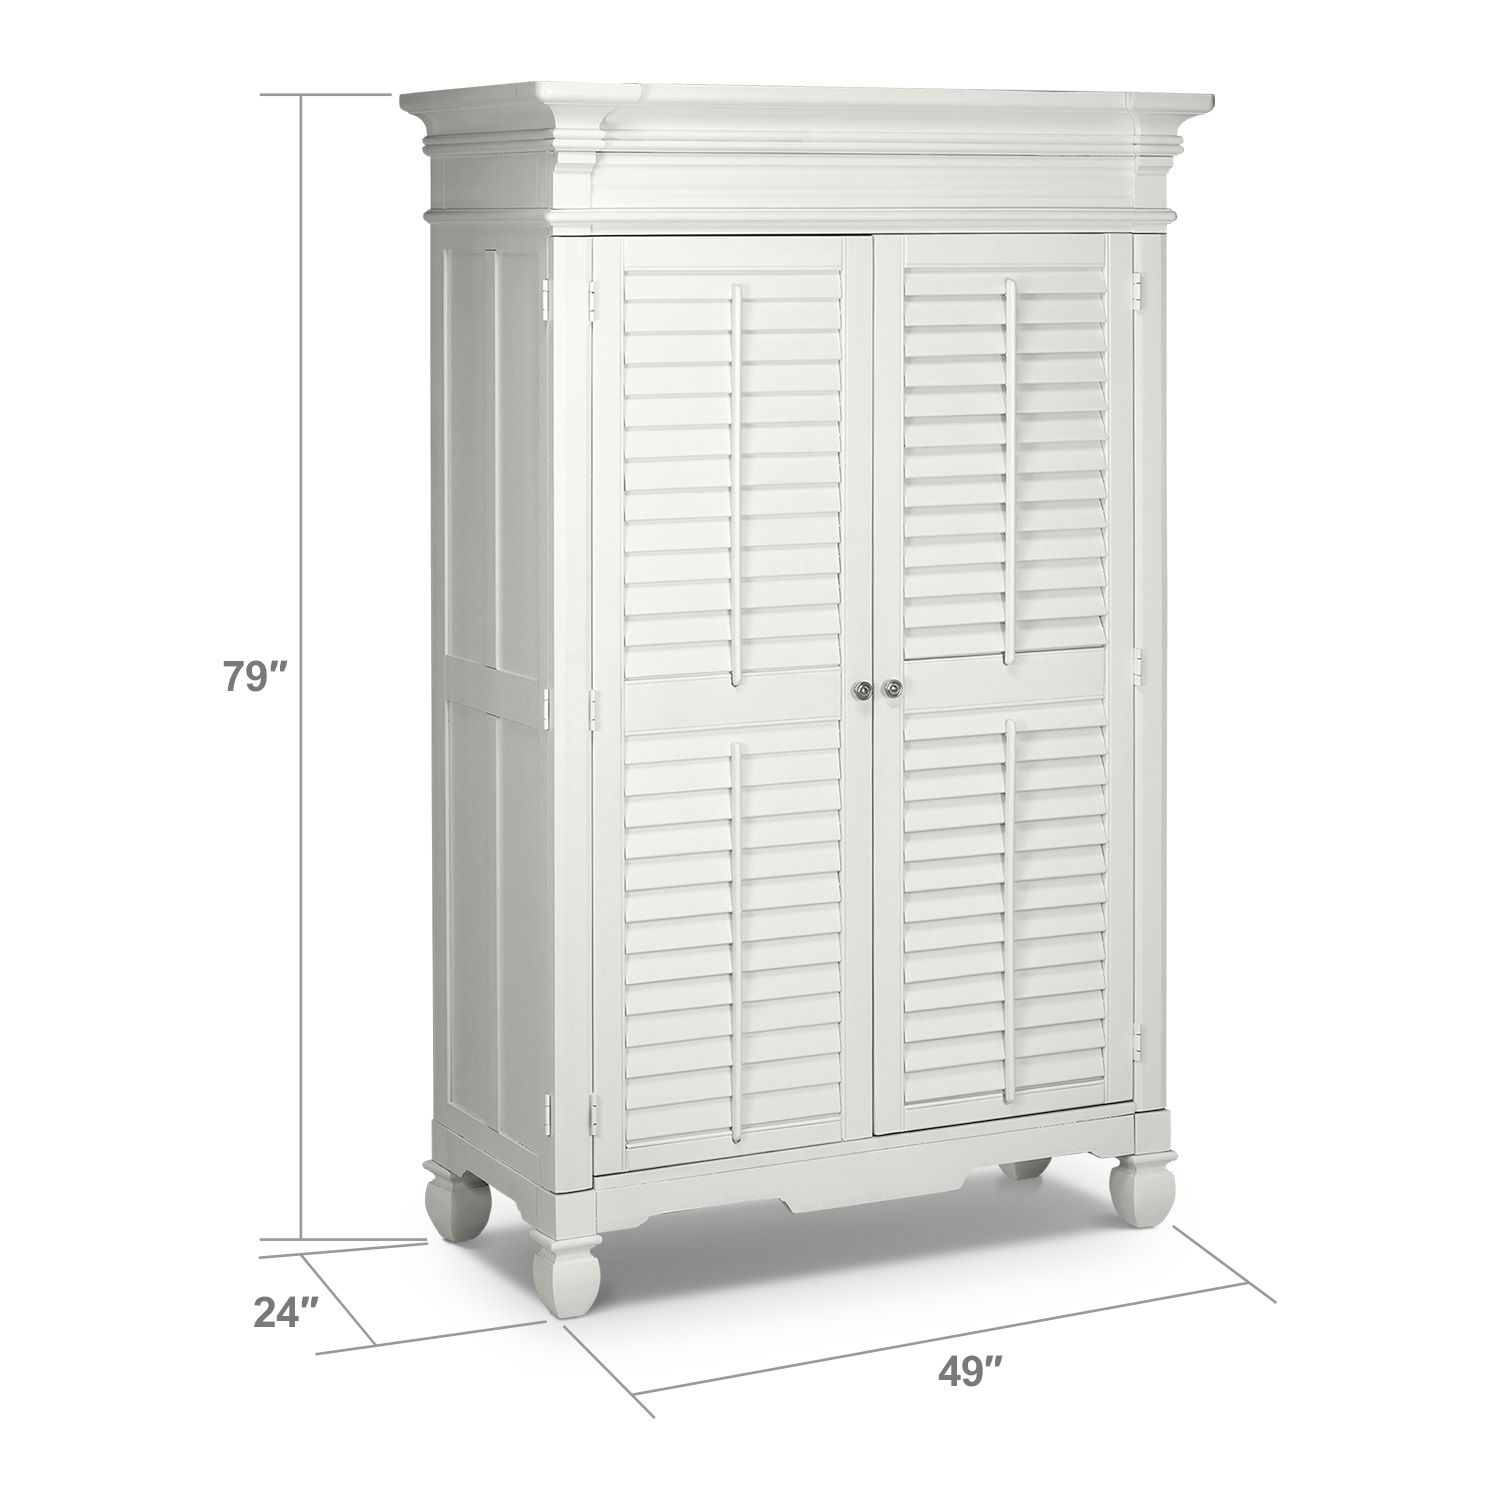 Charmant Ainsleyu0027s Room: Plantation Cove White Bedroom Armoire   Value City Furniture